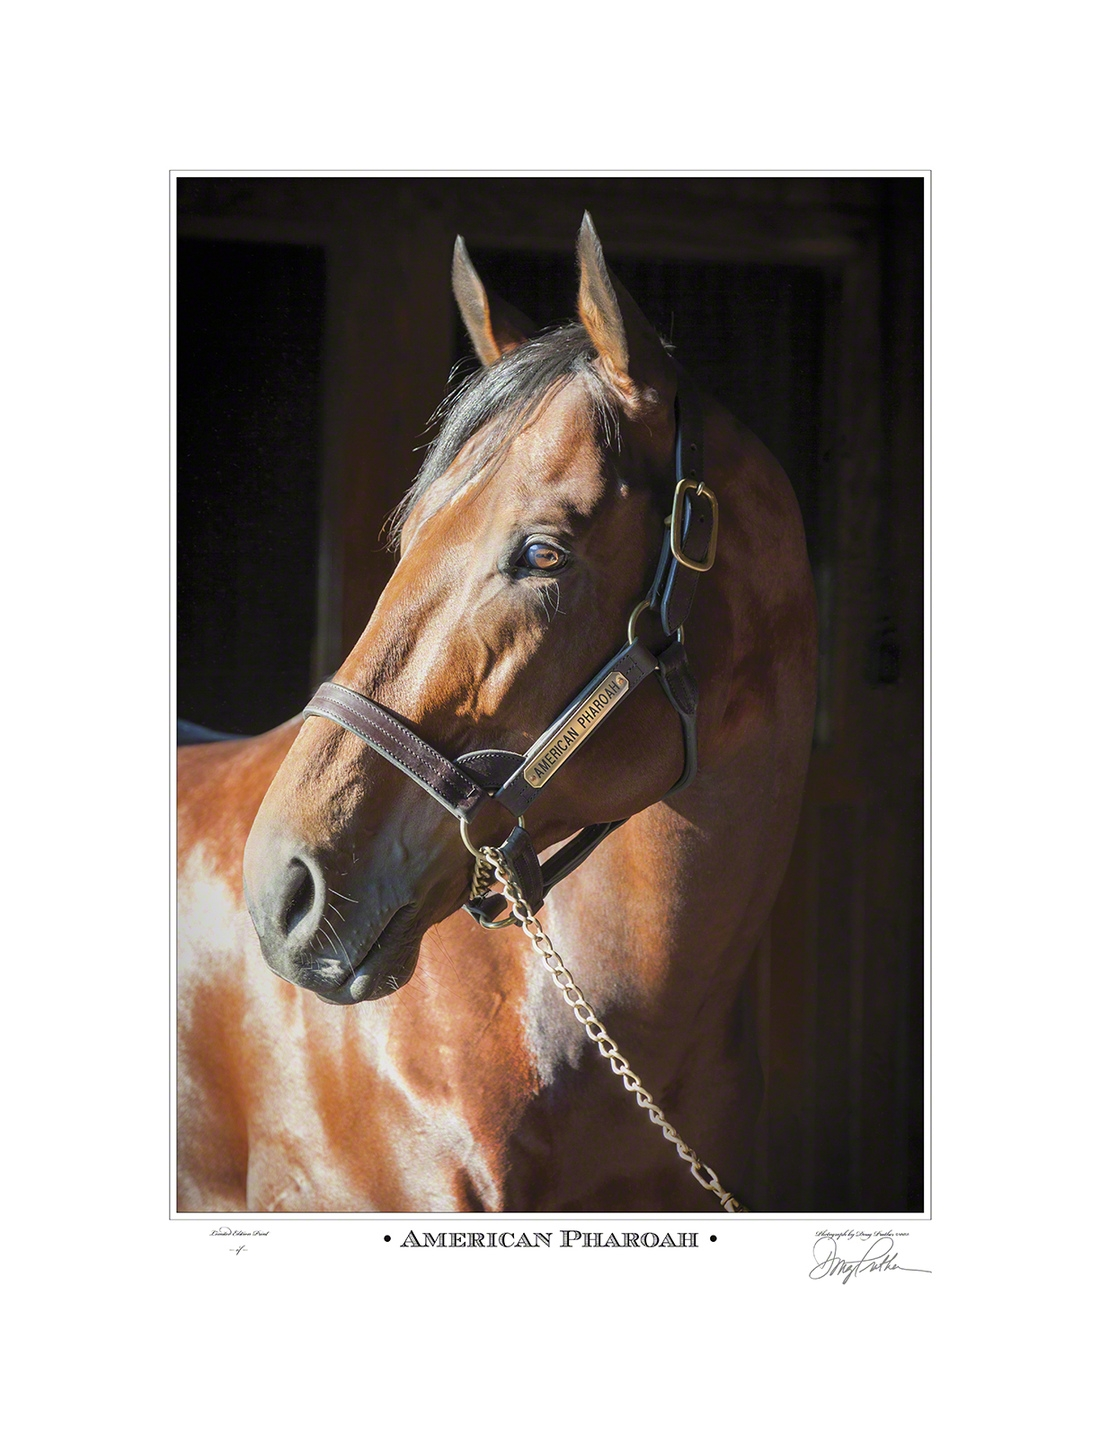 American Pharoah, 2015 Triple Crown Winner portrait photographed his stallion barn on Ashford Stud, Versailles, Kentucky